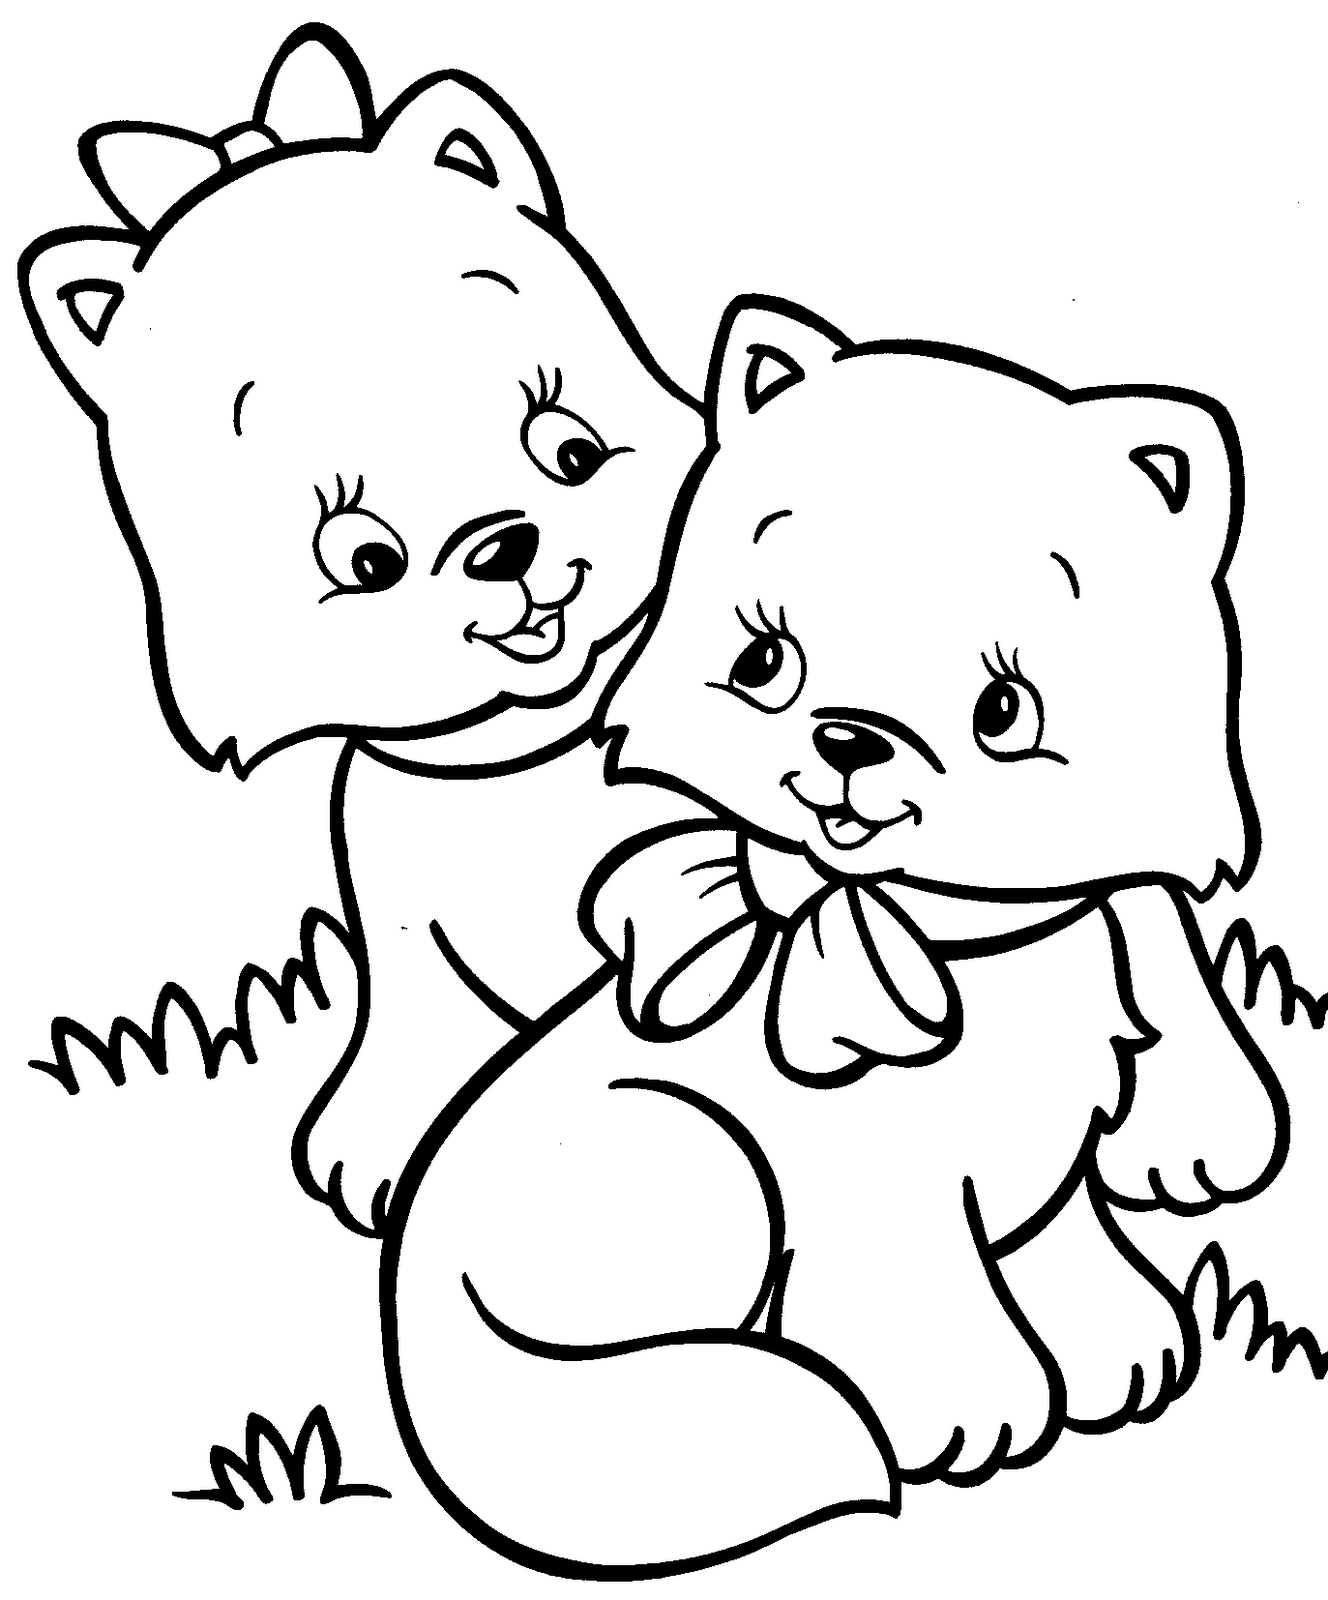 Kittens Coloring Pages Kitten Coloring Pages Best Coloring Pages For Kids